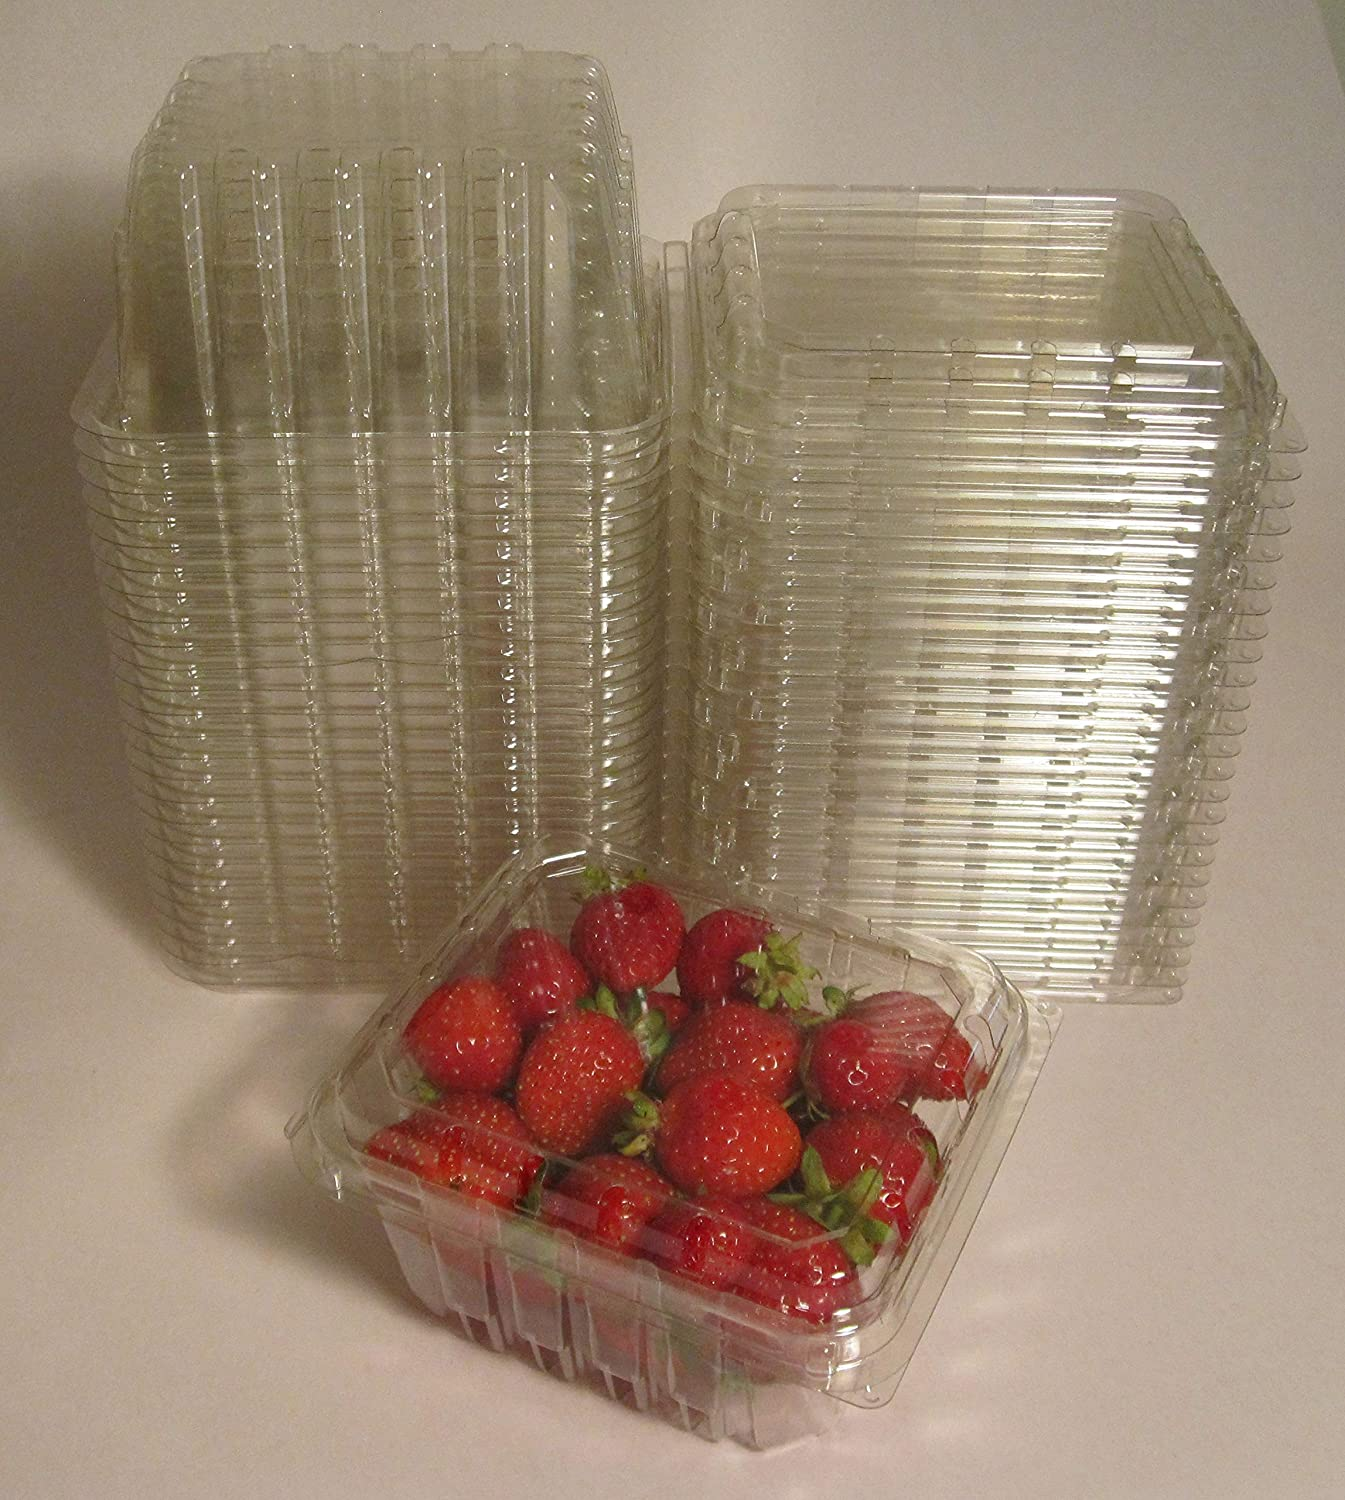 Plastic Clamshell Containers for Berries, Cherry Tomatoes, and Other Small Produce - 1 Pint Size (Pack of 50)